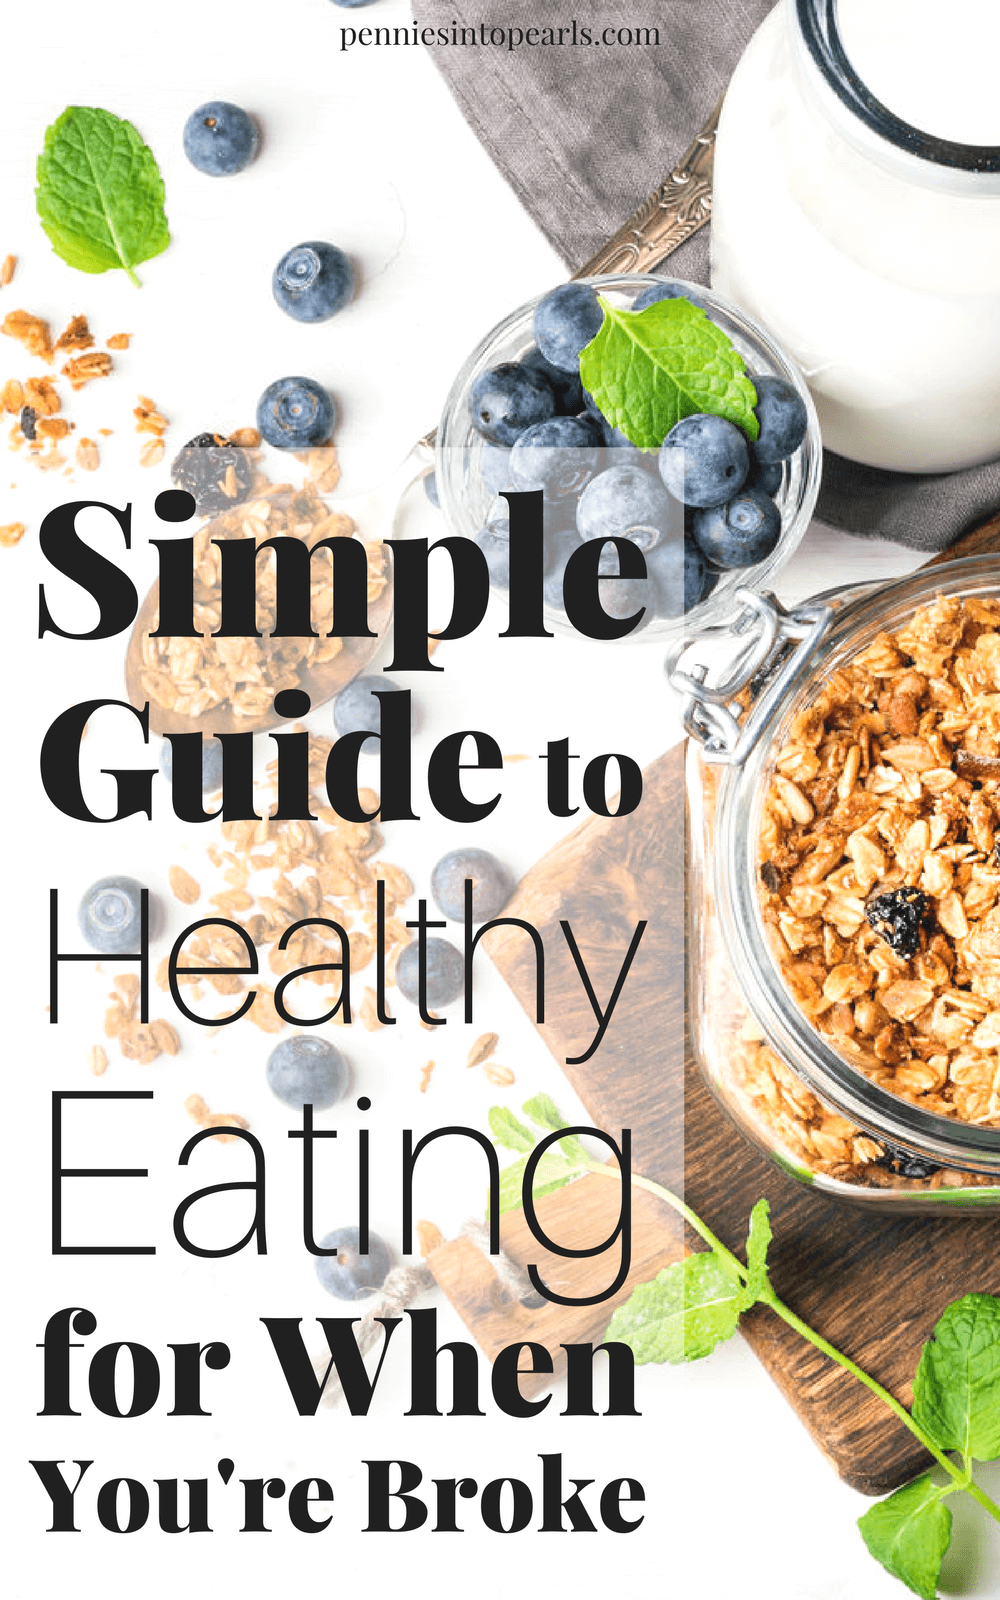 The Simple Guide To Healthy Eating When You're Broke